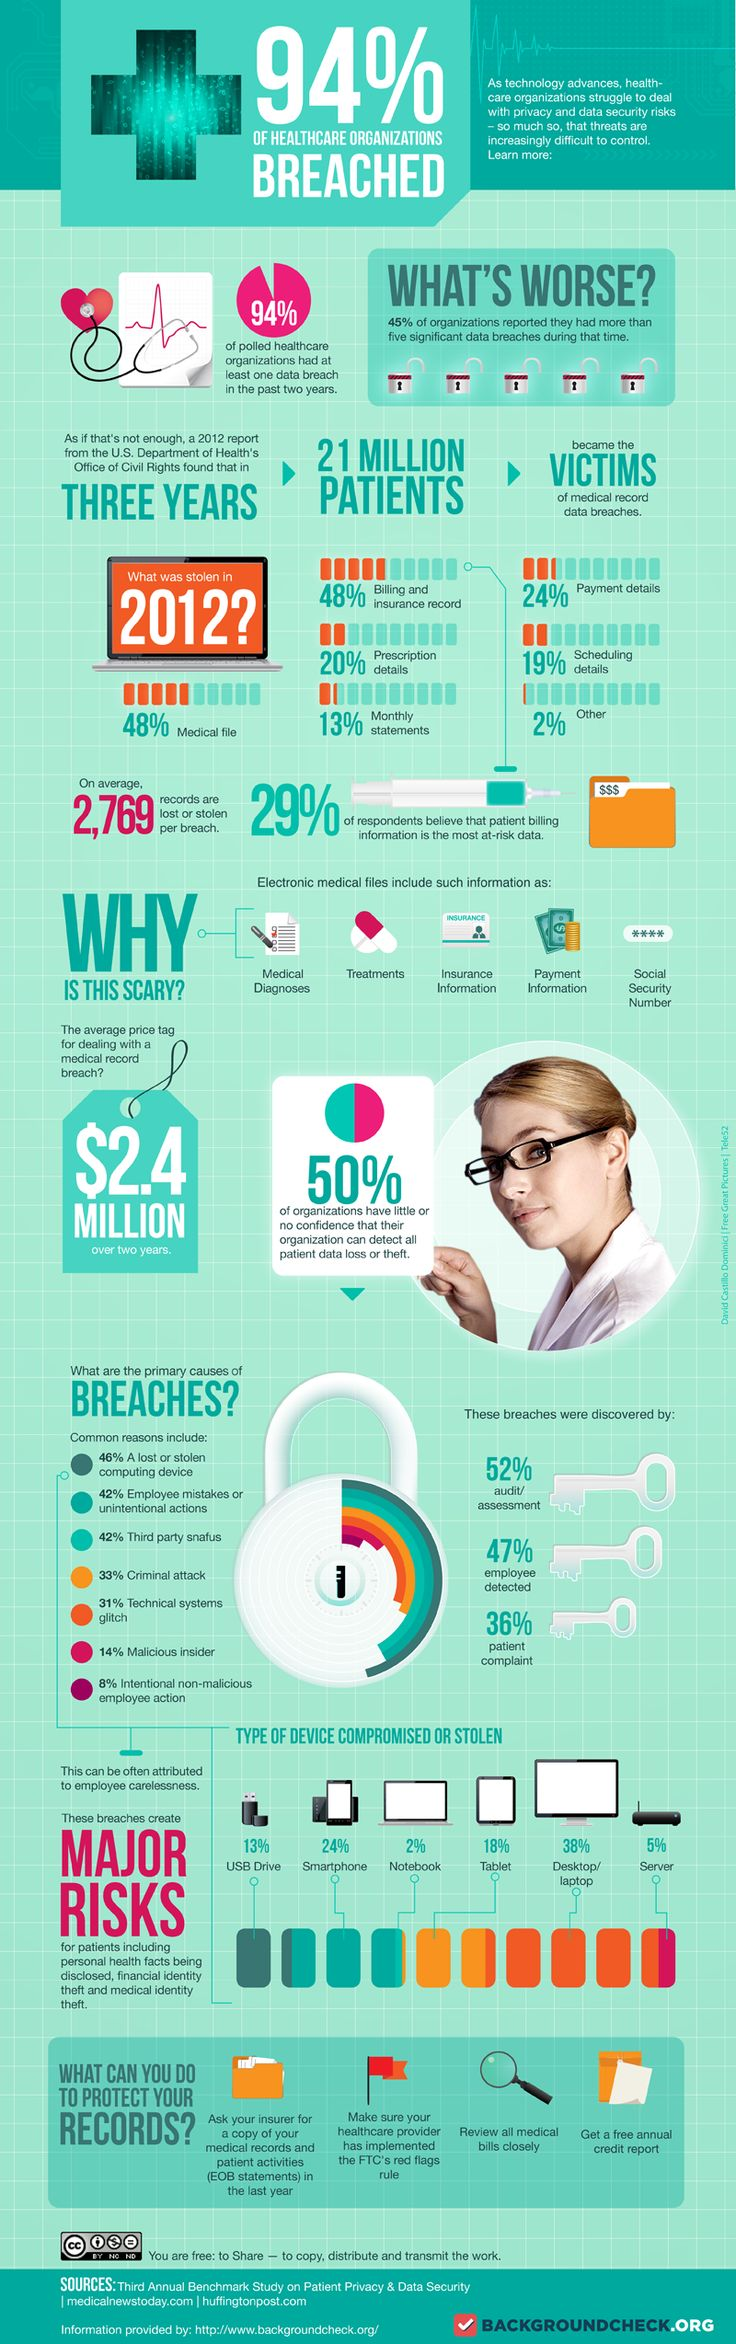 infographic shown below created by Backgroundcheck.org, 2,769 records are lost or stolen per breach.